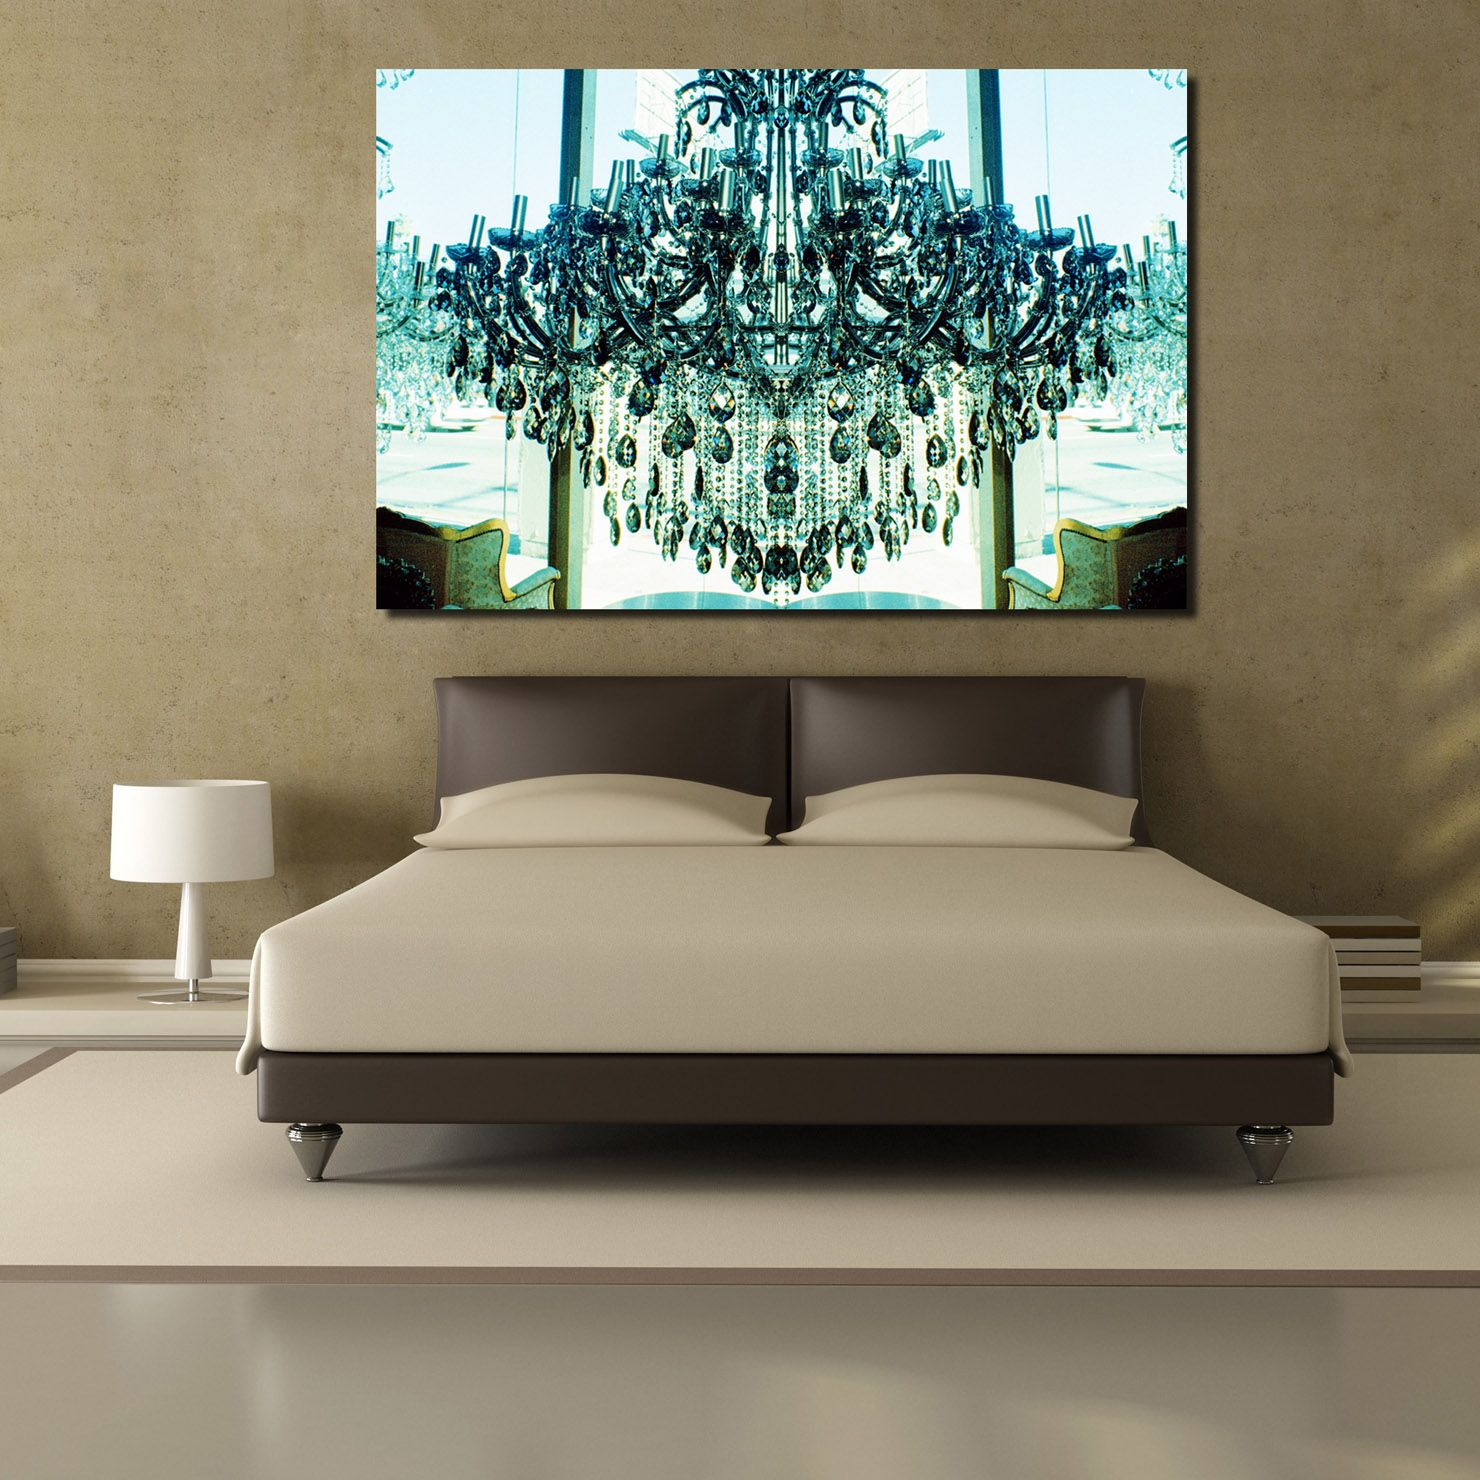 chandelierart canvas ideas net up light space chandelier art your to thejots of pieces cover lighting